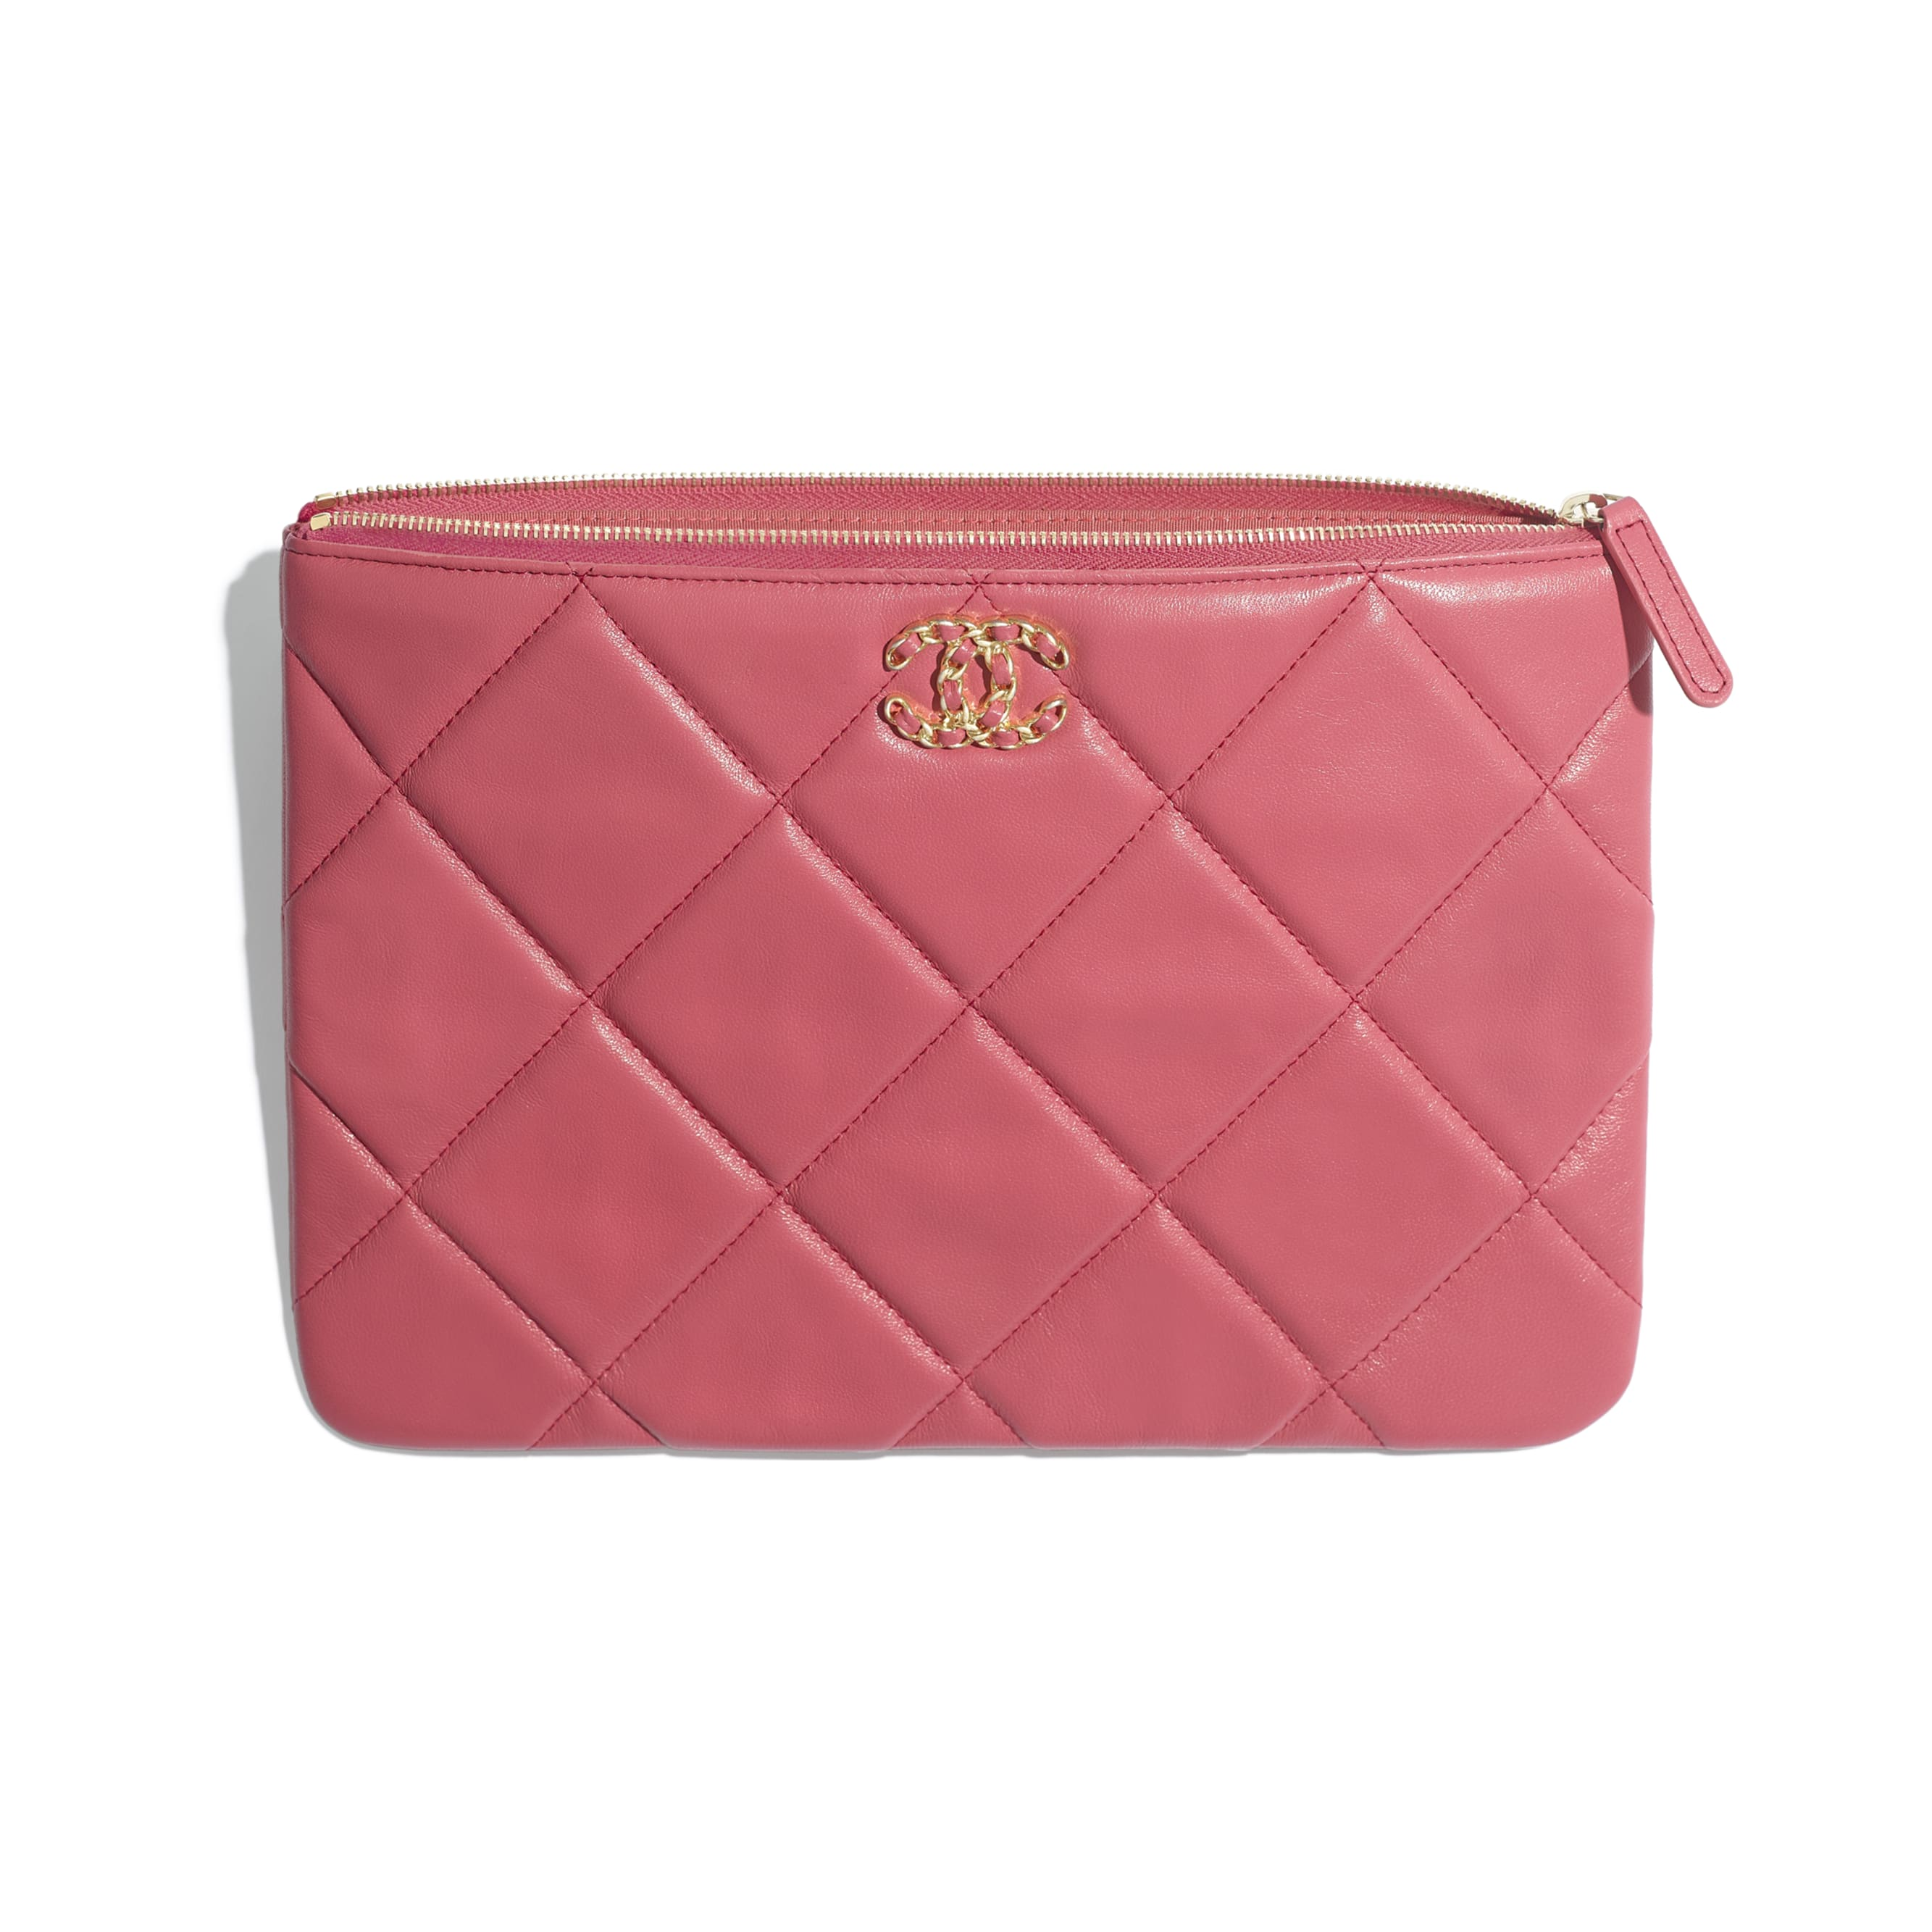 CHANEL 19 Pouch - Pink - Lambskin, Gold-Tone, Silver-Tone & Ruthenium-Finish Metal - Other view - see standard sized version